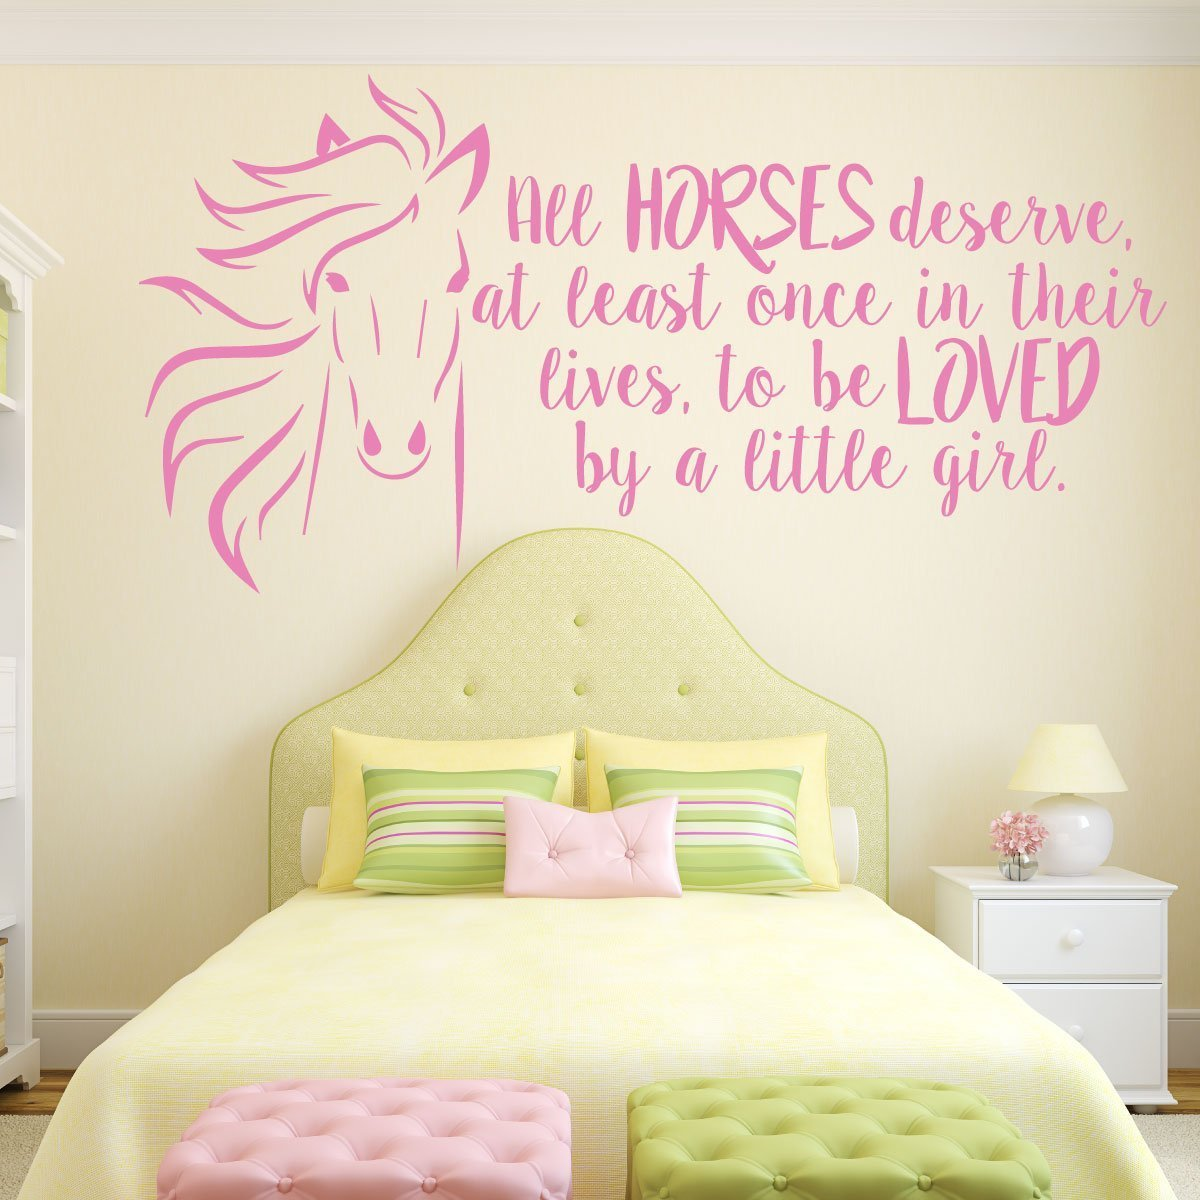 Awesome Little Girl Wall Decor Photos - The Wall Art Decorations ...